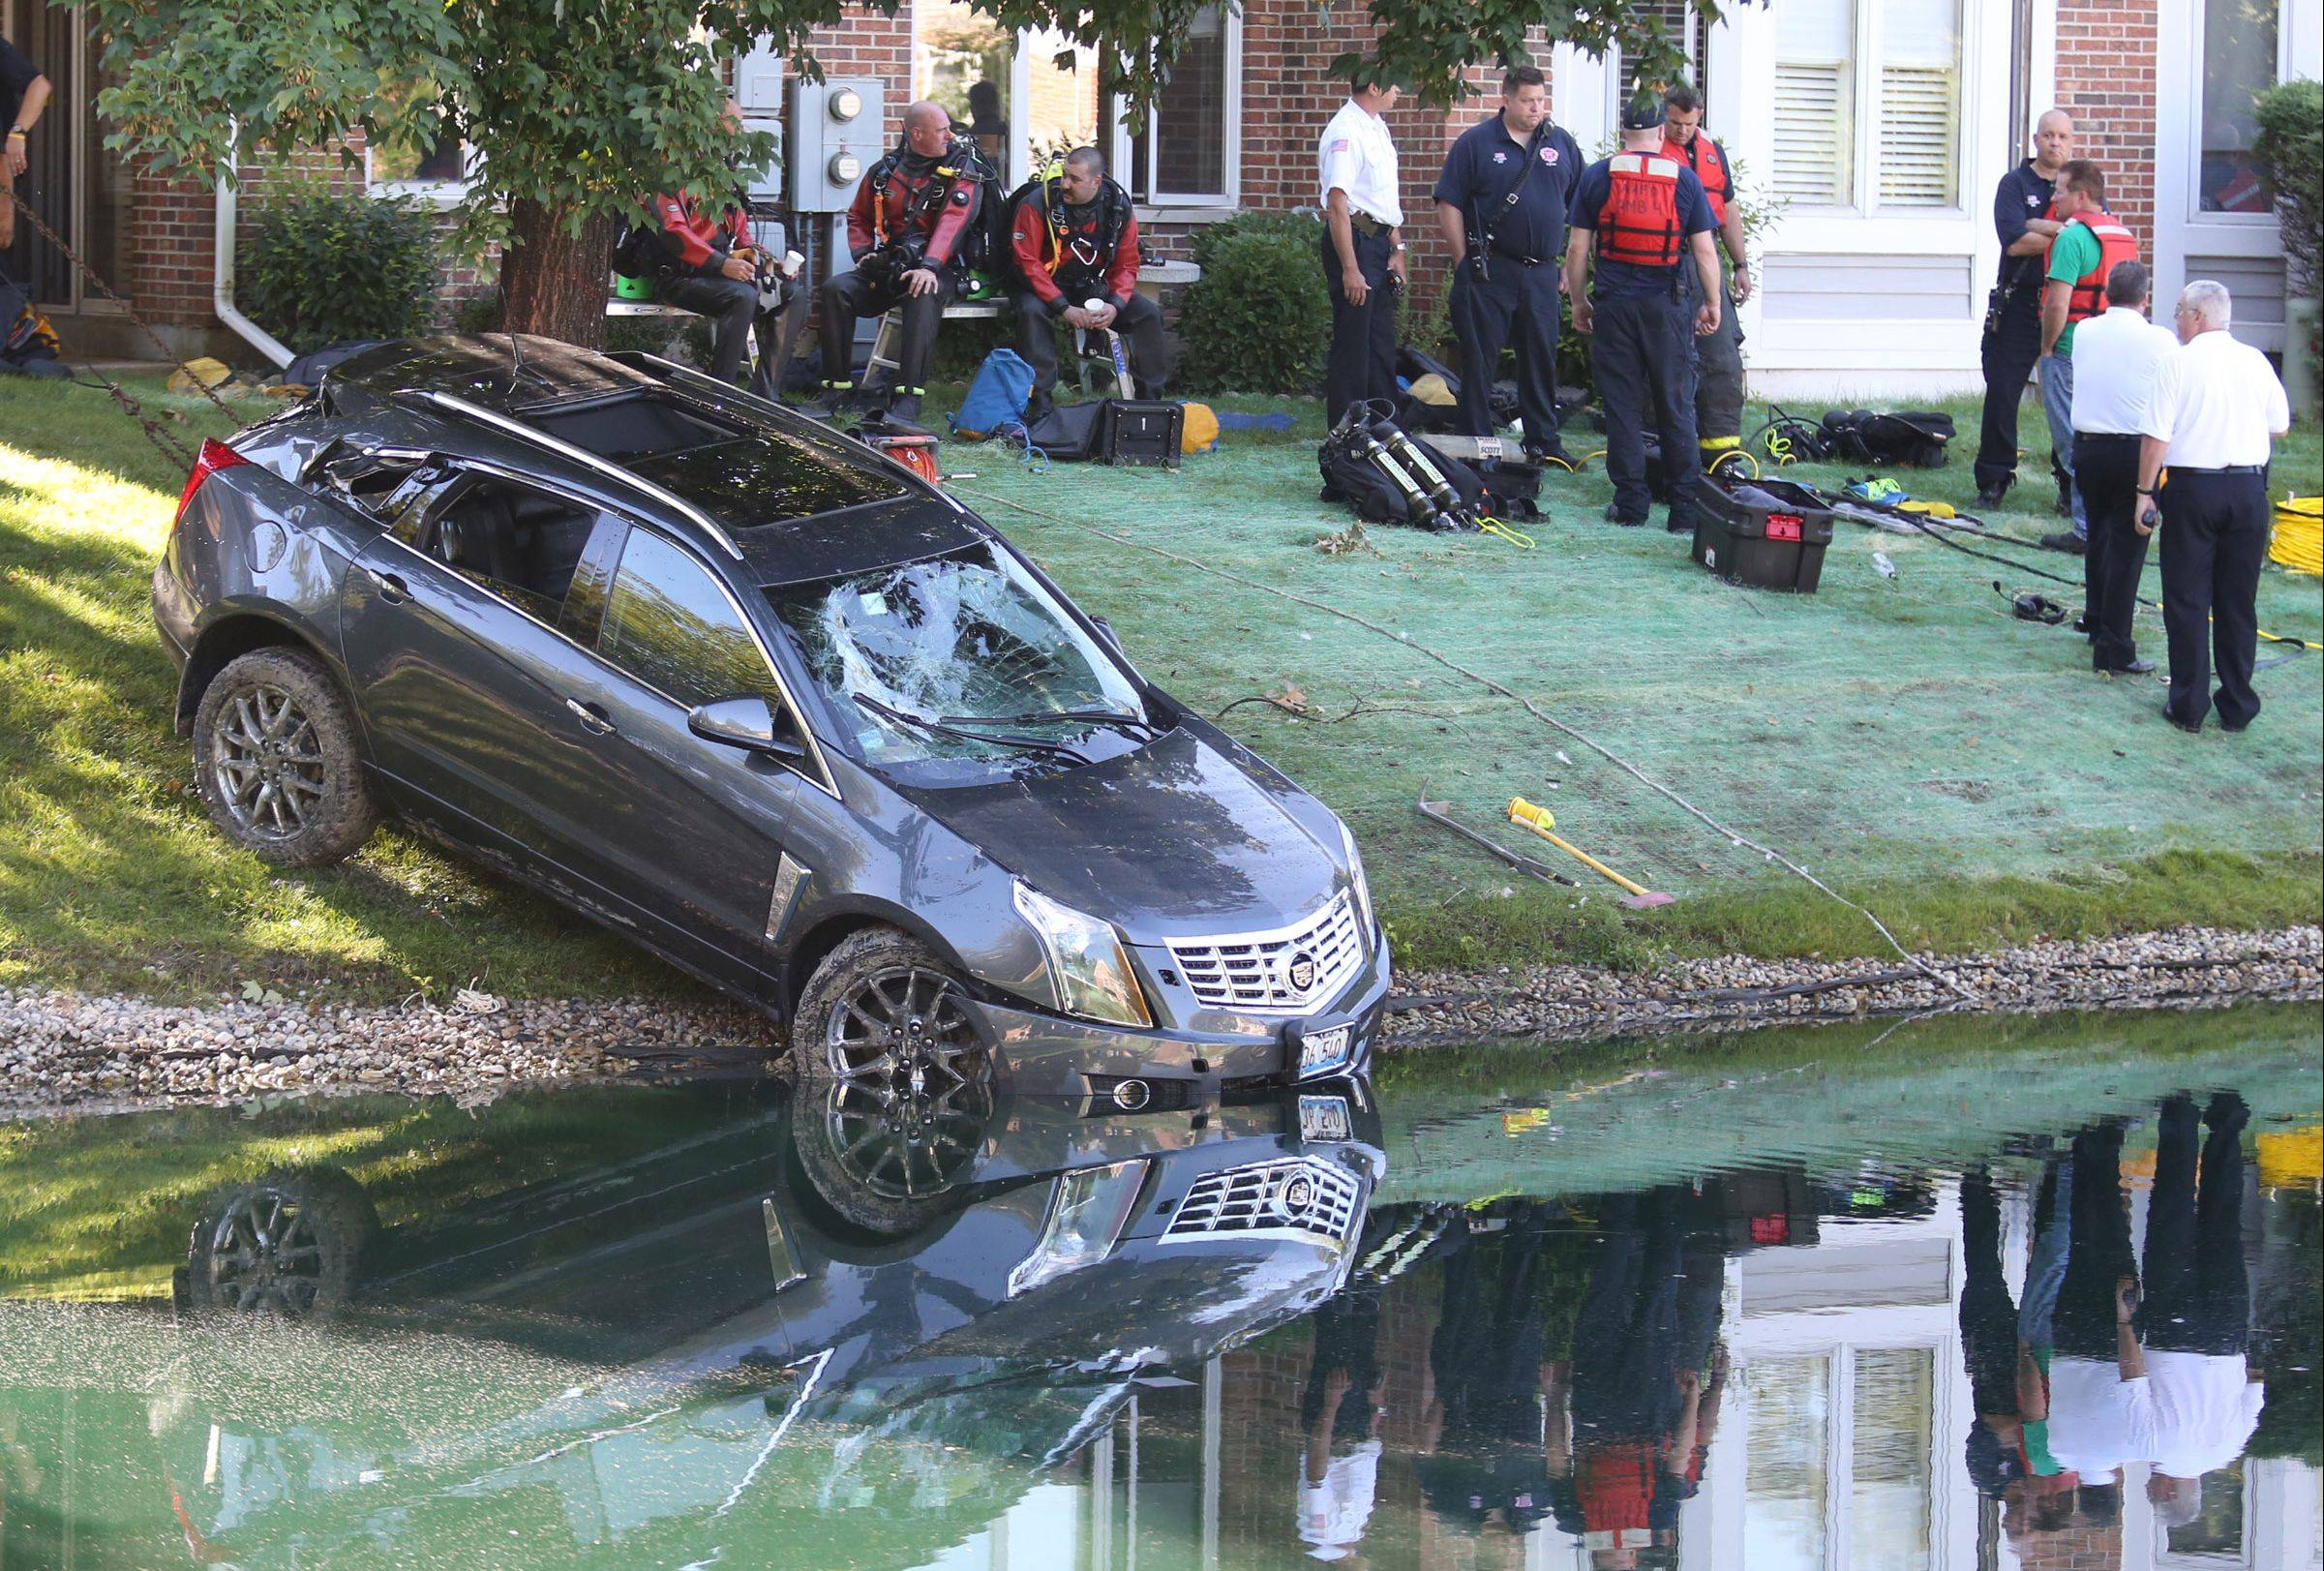 A 911 dispatcher who took the call of an 89-year-old Arlington Heights man from his sinking car on July 24 didn't follow the proper protocols, officials said.